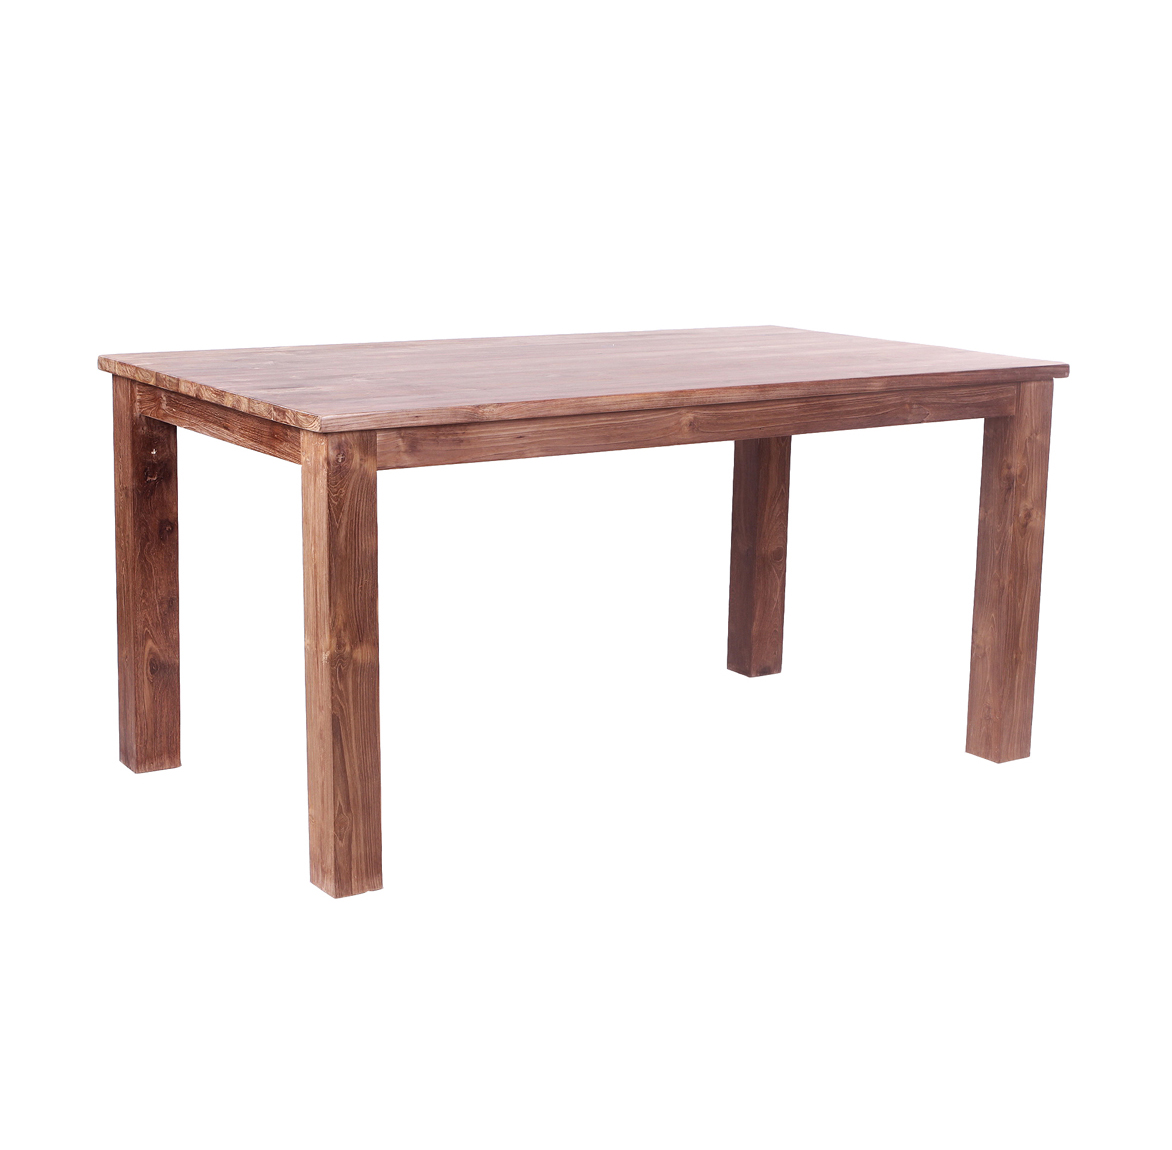 classic table 1058 WITH overhang